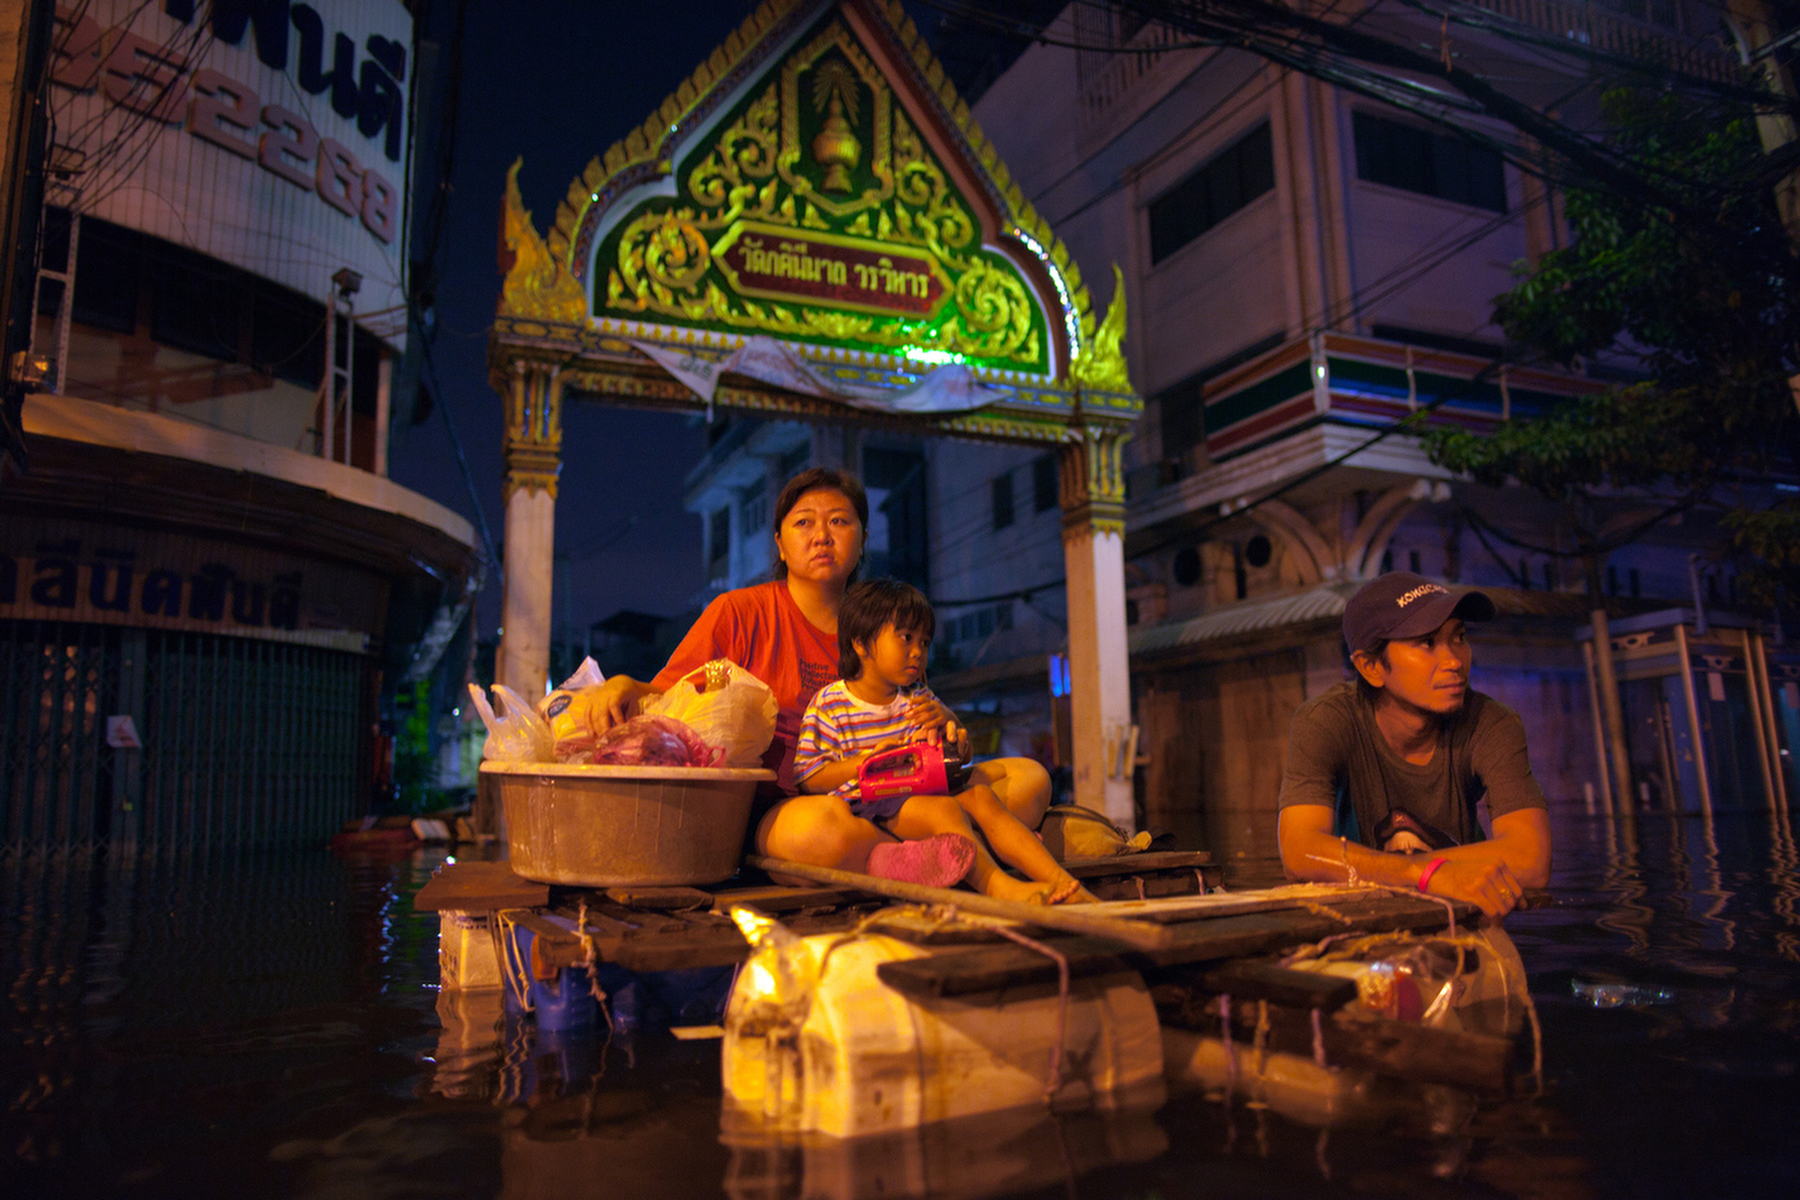 BANGKOK,THAILAND - OCTOBER 31:  Tassaporn holds her son Poonawat,3, on a makeshift raft as they wait for more supplies to bring home in the Thonburi area October 31, 2011 in Bangkok, Thailand. Thousands of flood victims have been forced to take shelter at crowded evacuation centers around the capitol city. Hundreds of factories have been closed in the central Thai province of Ayutthaya and Nonthaburi. Thailand is experiencing the worst flooding in over 50 years which has affected more than nine million people. Over 400 people have died in flood-related incidents since late July according to the Department of Disaster Prevention and Mitigation.(Photo by Paula Bronstein /Getty Images)